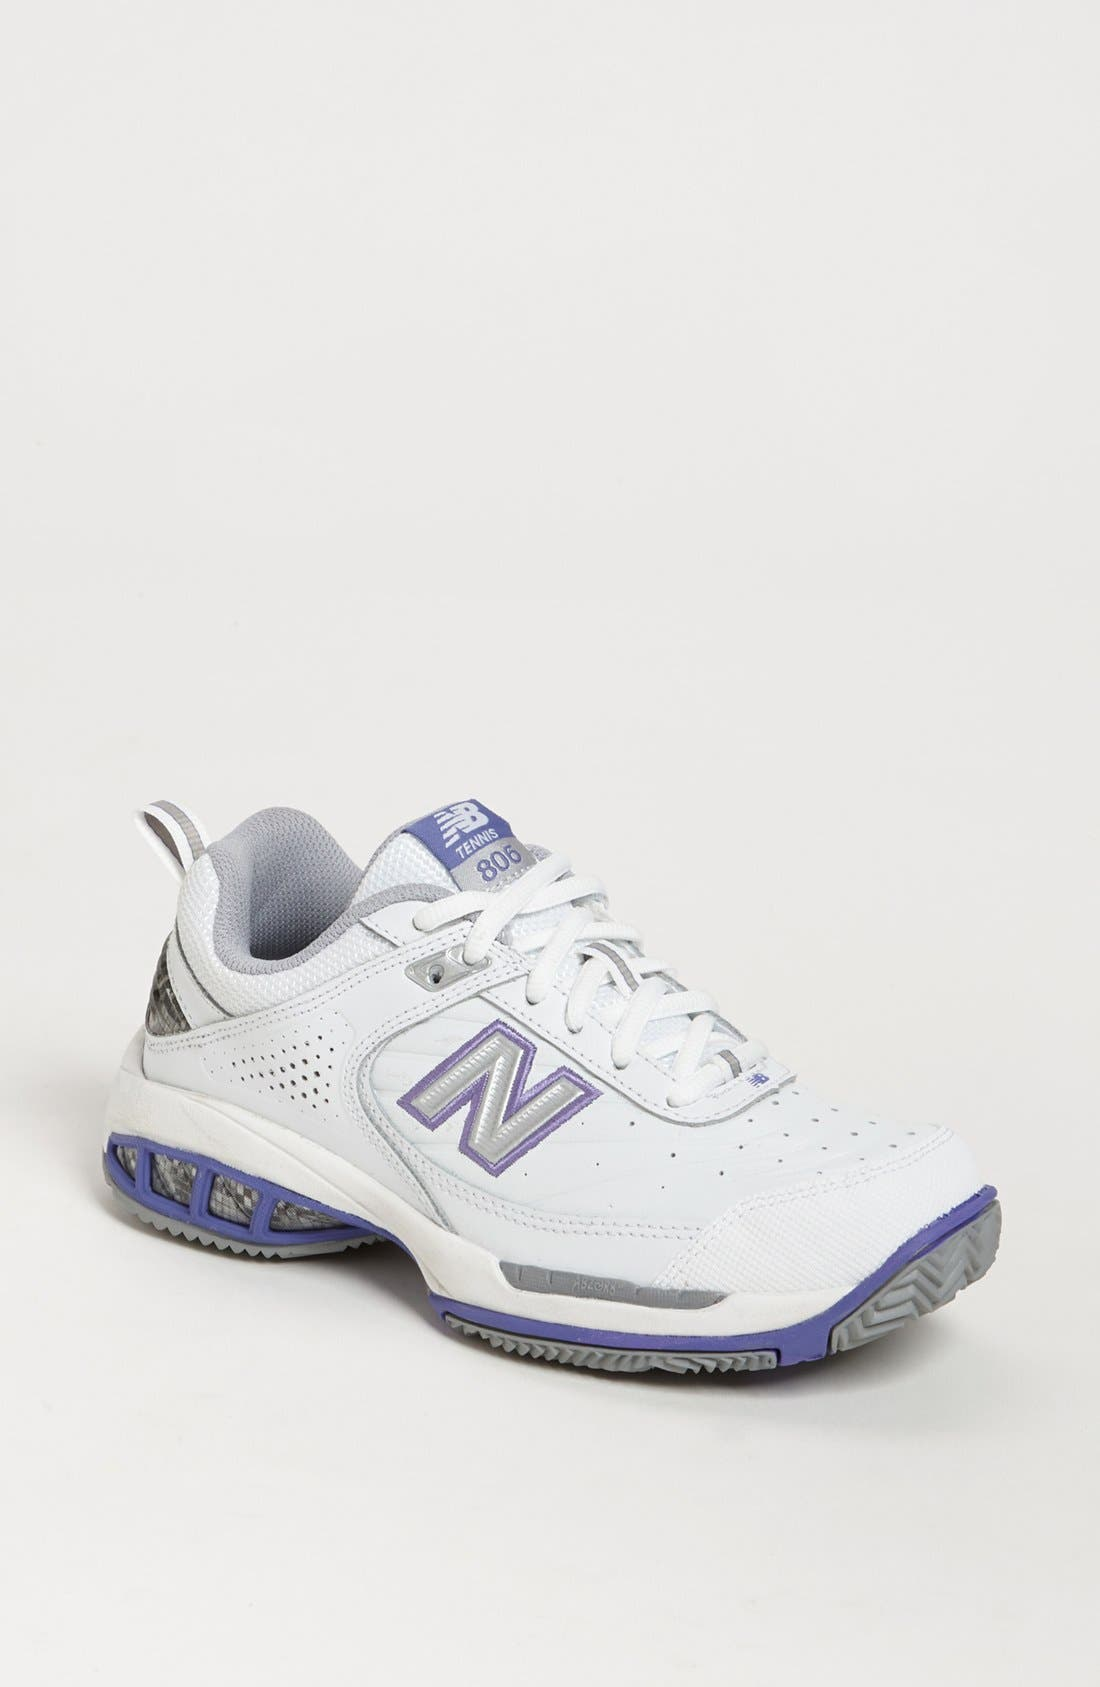 Main Image - New Balance '806' Tennis Shoe (Women)